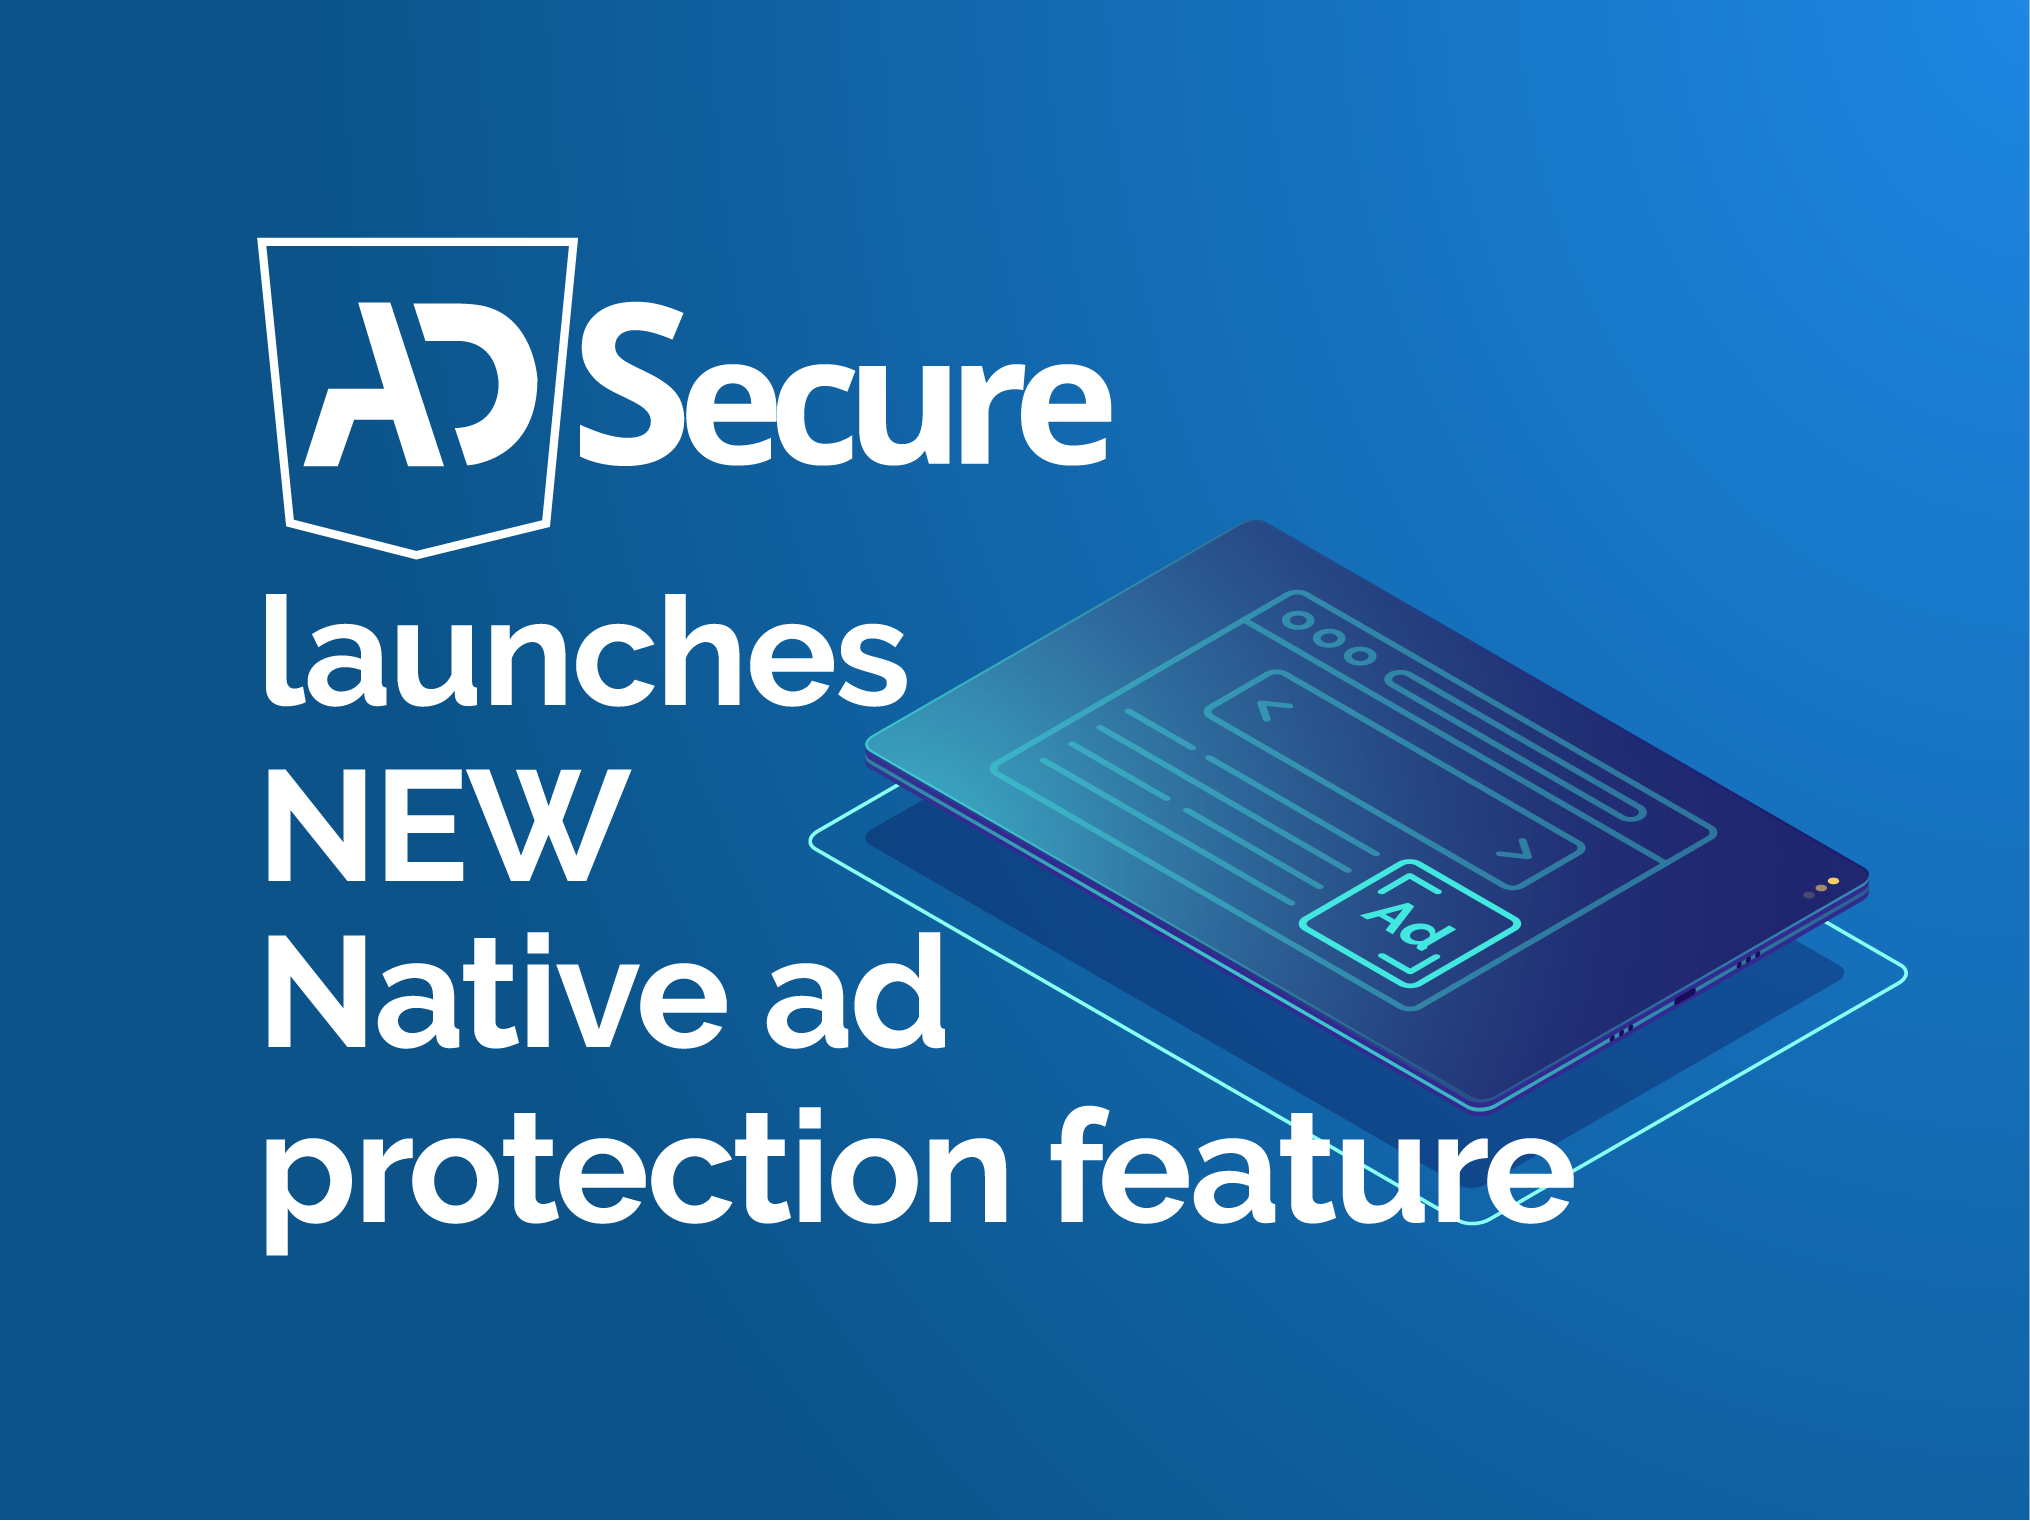 AdSecure Launches New Native Ad Protection Feature